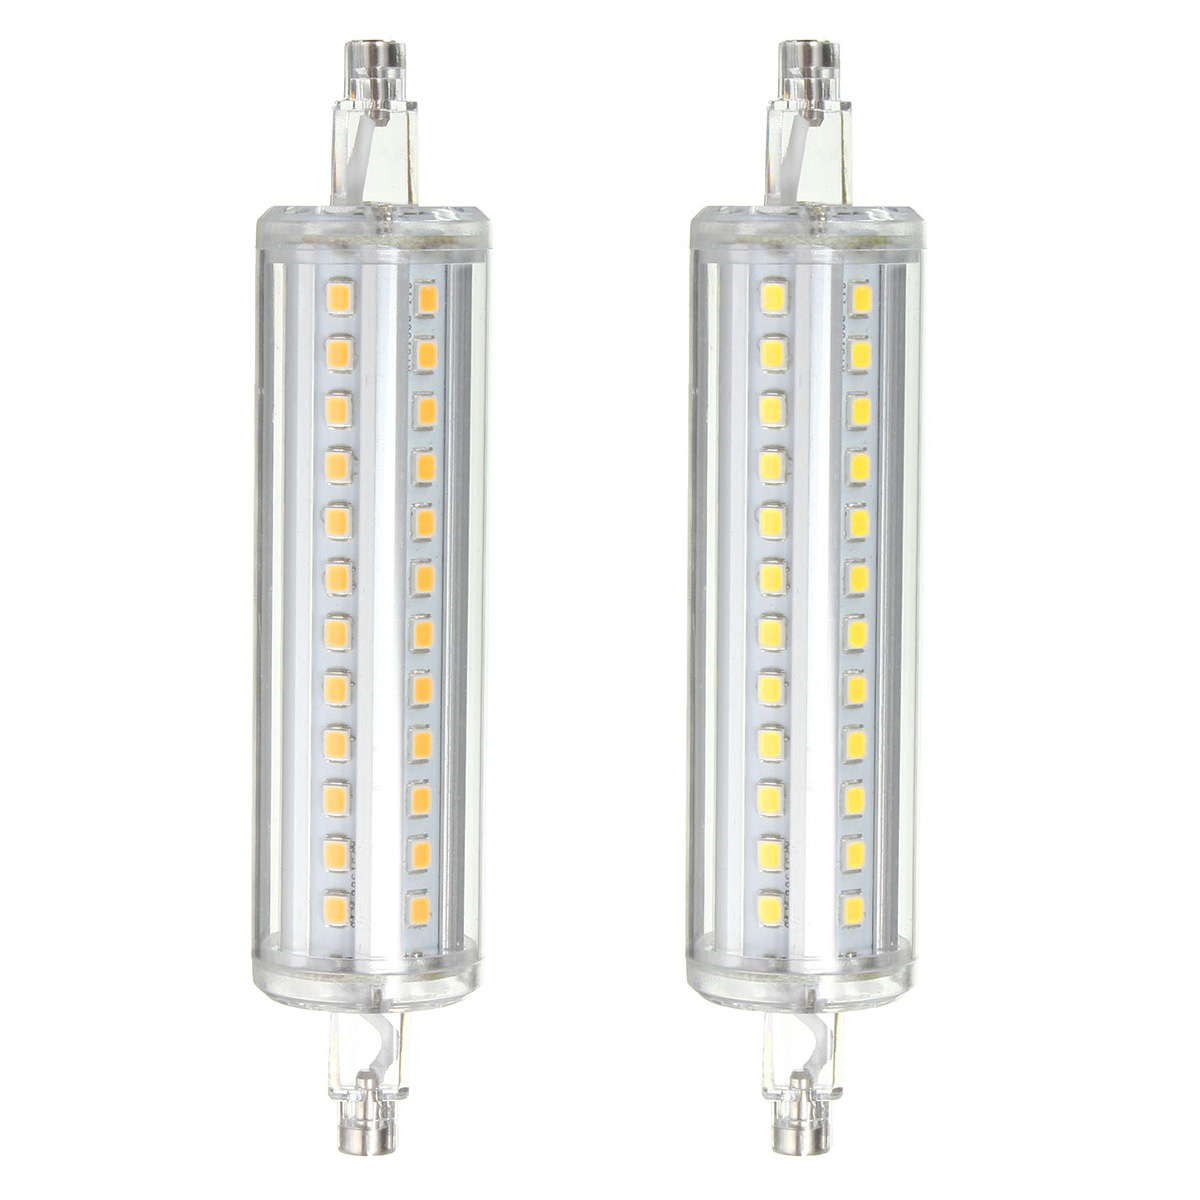 Dimmable R7S 8W 118MM 72 SMD 2835 LED Pure White Warm White Corn Light Lamp Bulb AC85-265V